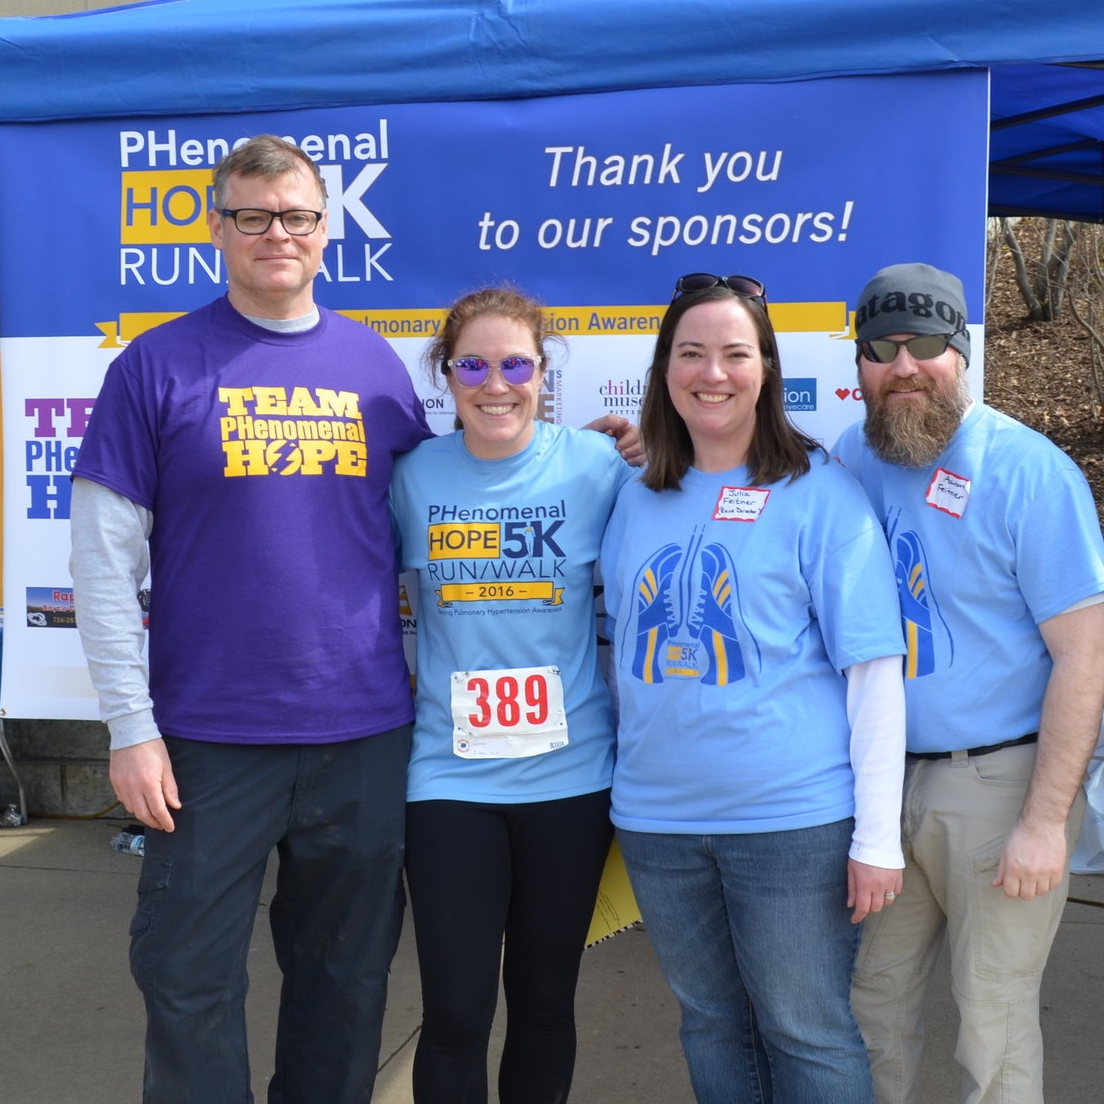 Chris Field & Dr. Patty George (Team PHenomenal Hope's Executive Director & President) with Julia & Aaron Feitner (Race Directors)